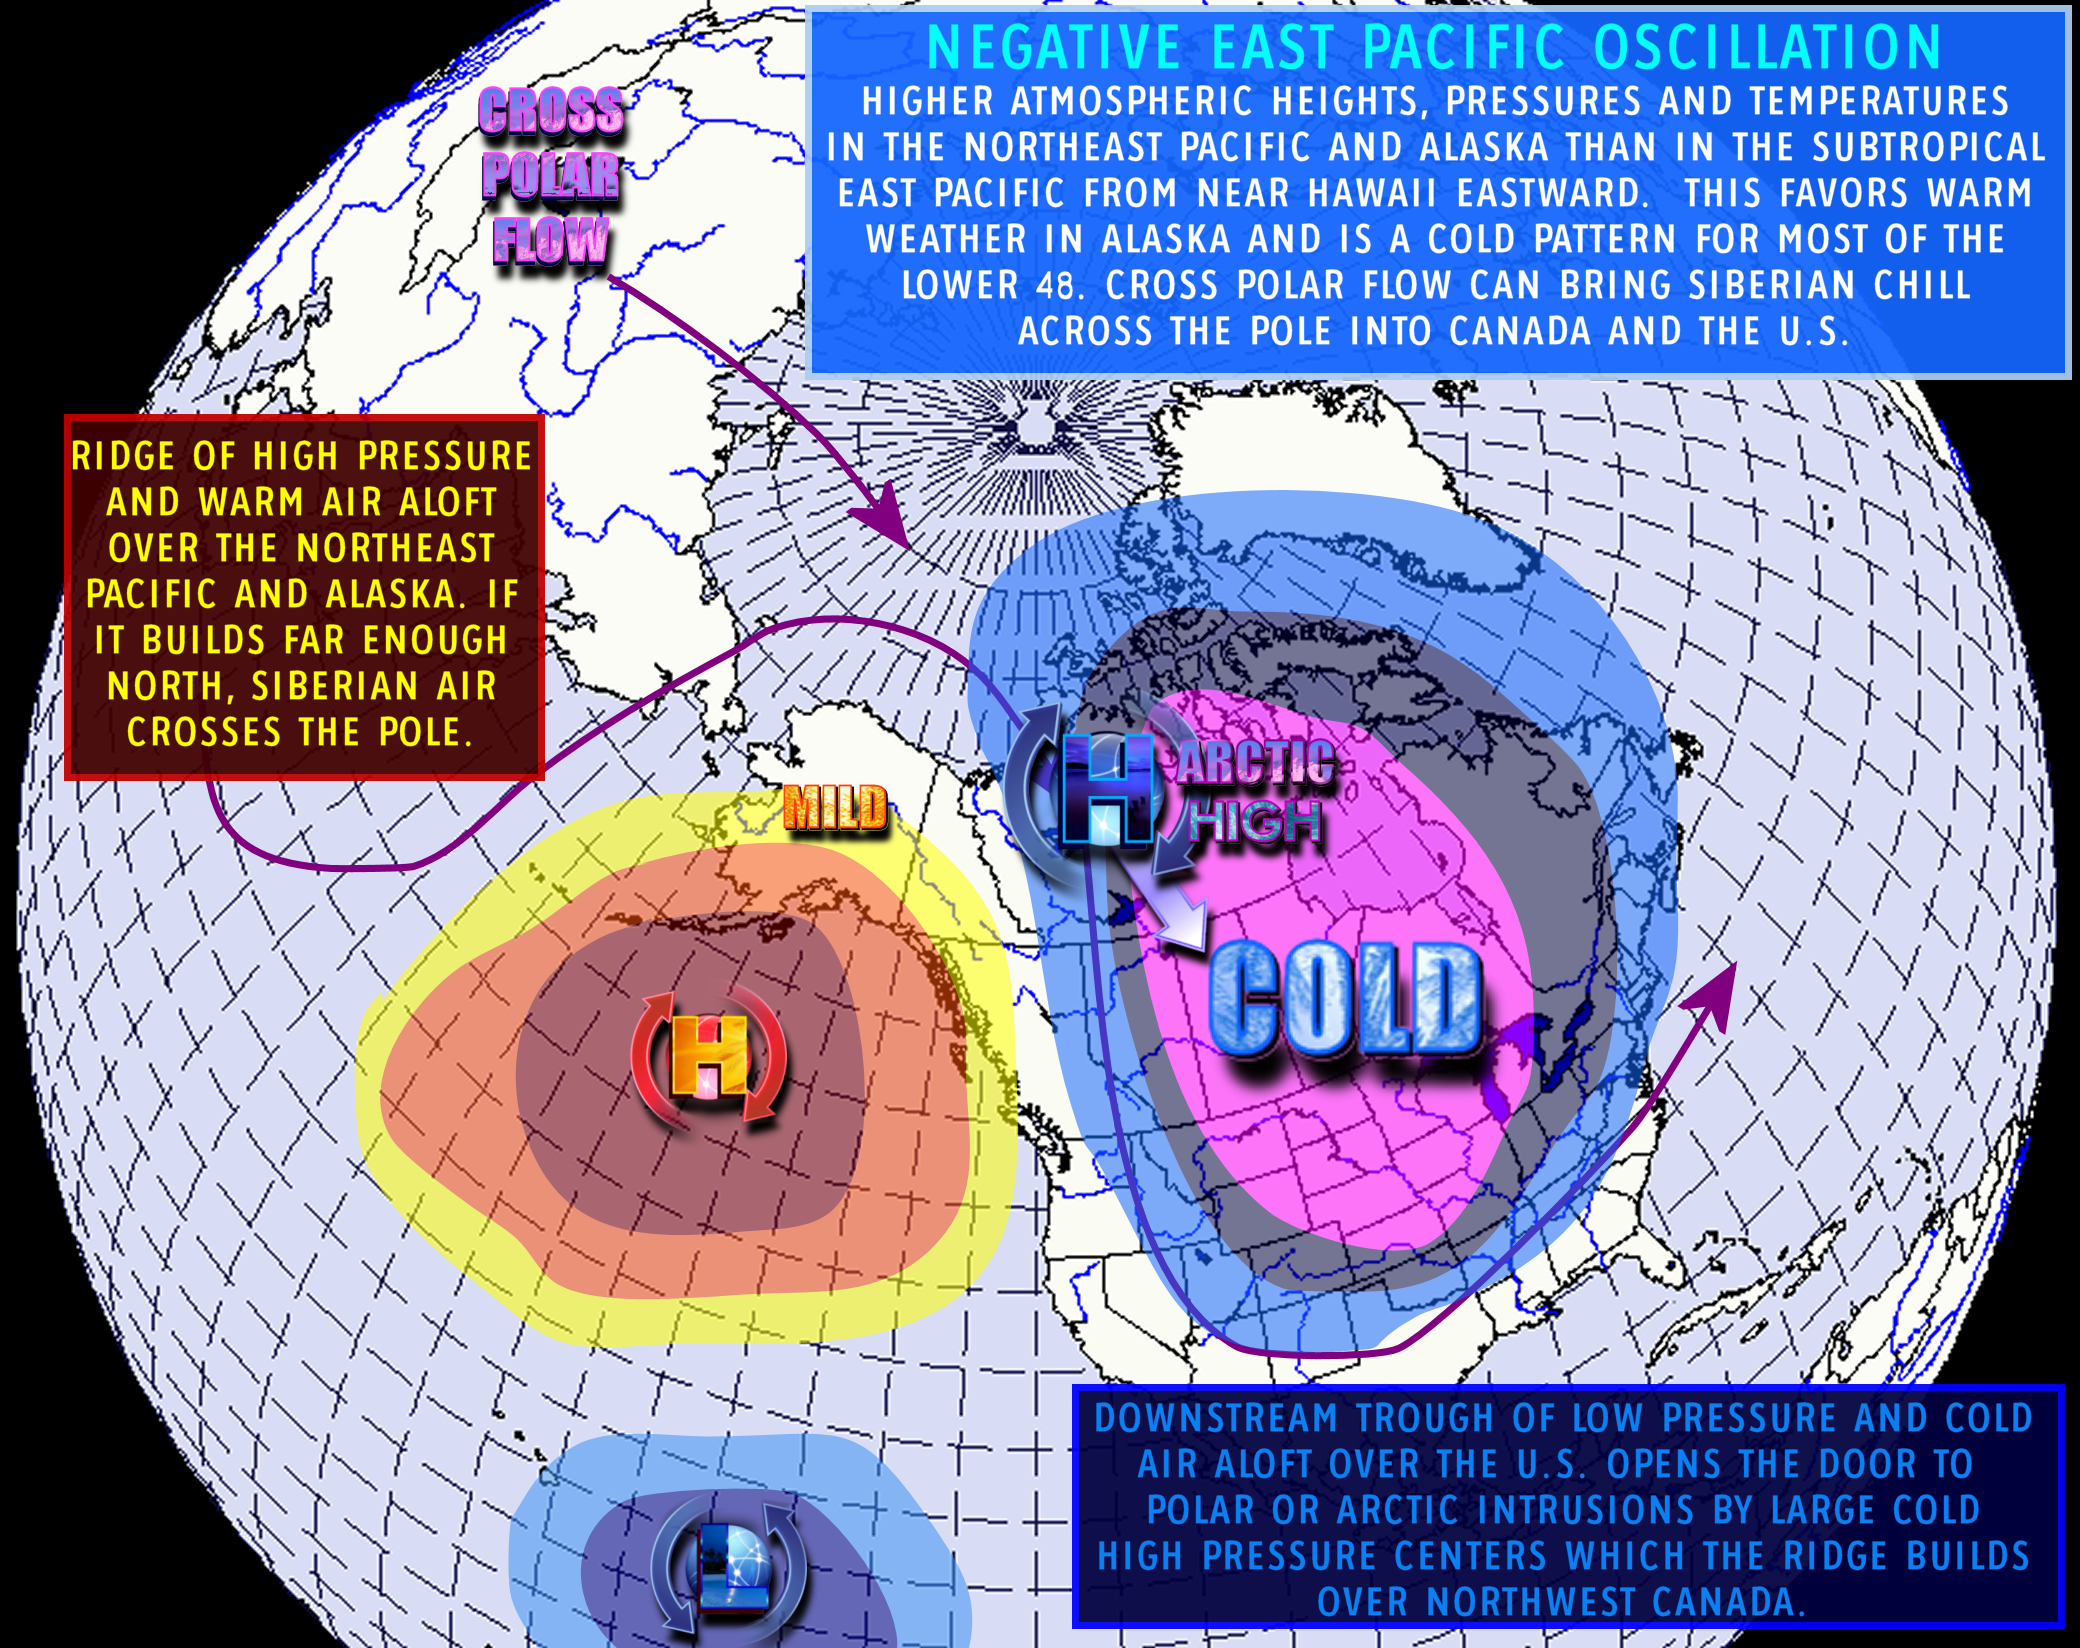 A graphic representation of a classic Negative EPO (-EPO) phase, with a cross polar flow bringing cold air into Canada and the United States.